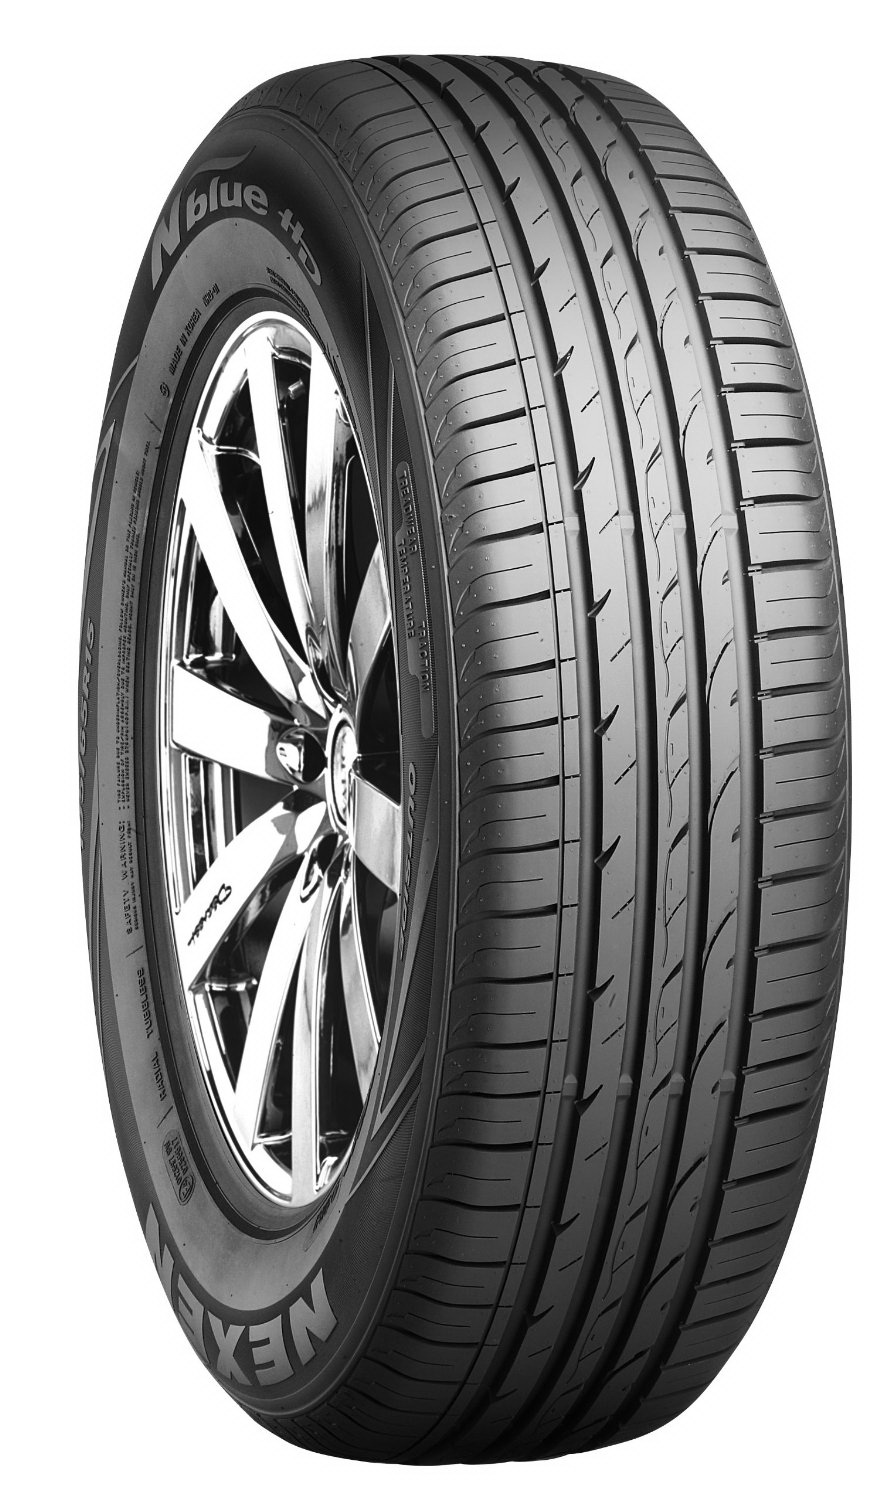 Шина летняя NEXEN 215/60R16 N-BLUE HD PLUS 95H